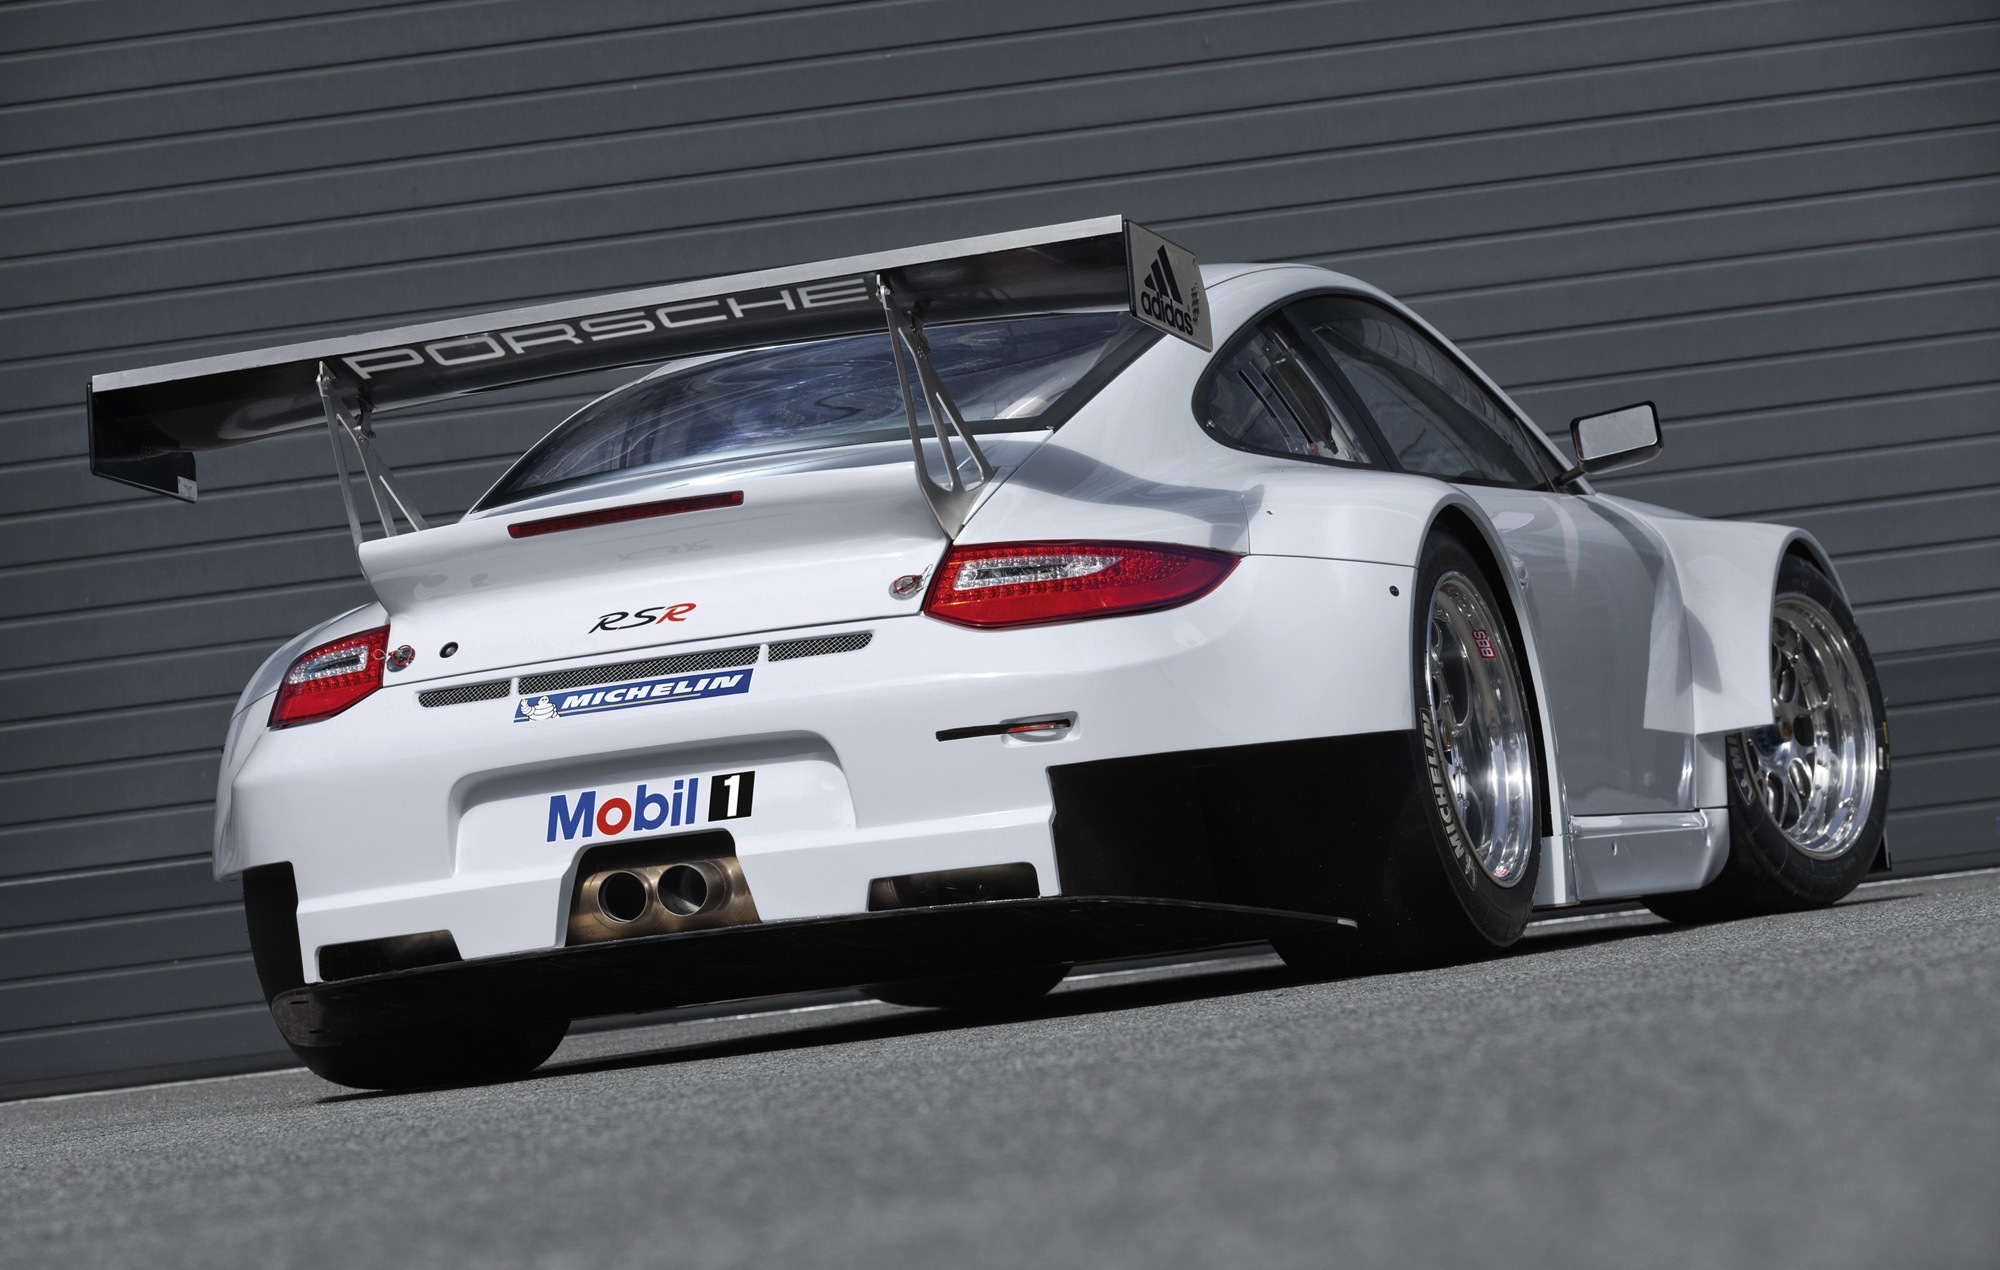 Porsche Images Porsche 911 Gt3 Rsr Hd Wallpaper And